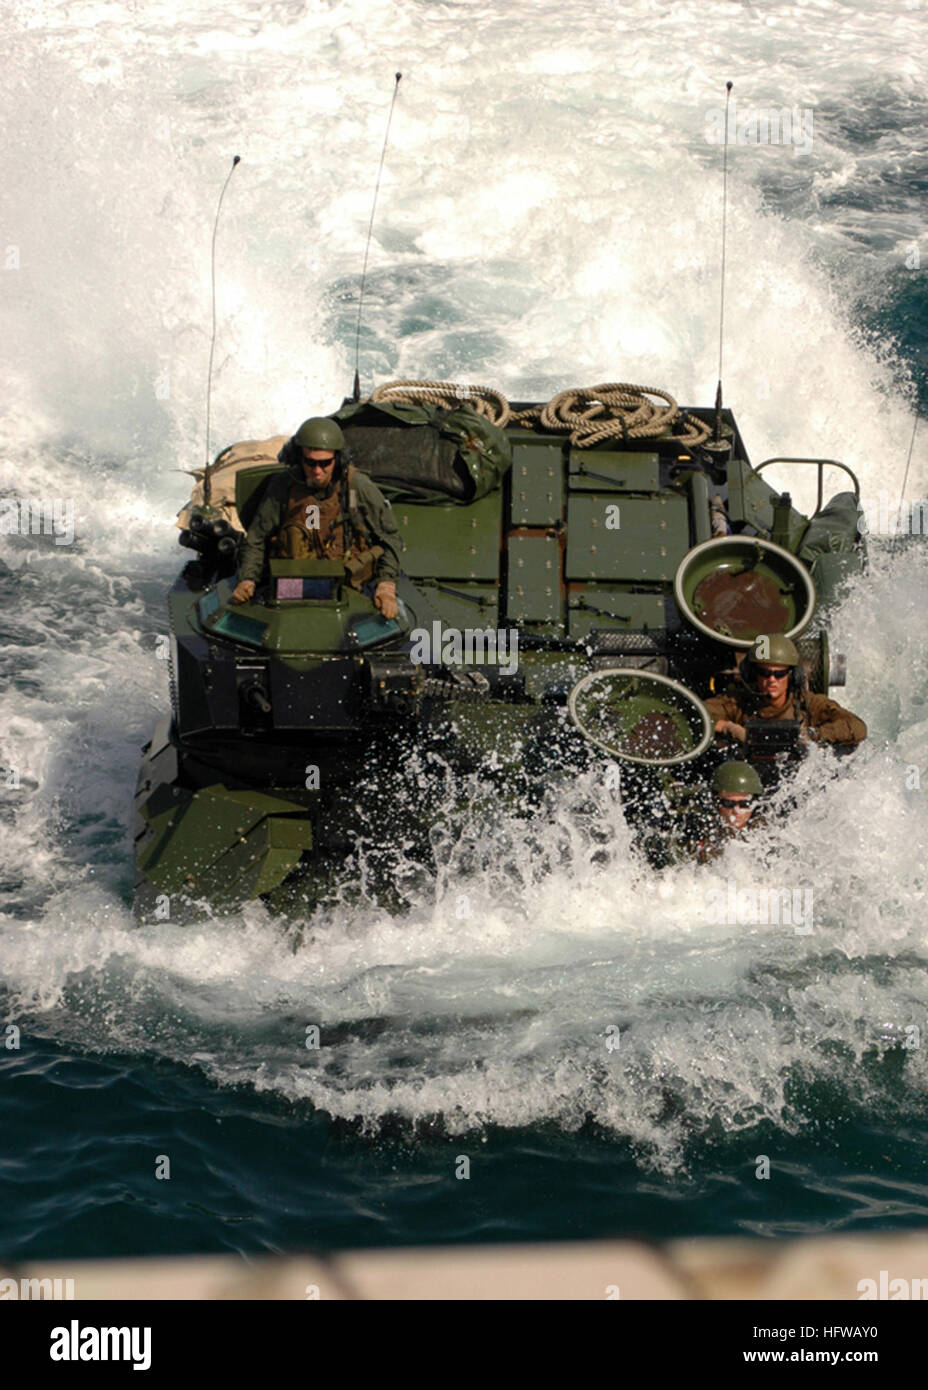 080719-N-7355L-027 ATLANTIC OCEAN (July 19, 2008) Amphibious assault vehicles assigned to the 26th Marine Expeditionary - Stock Image